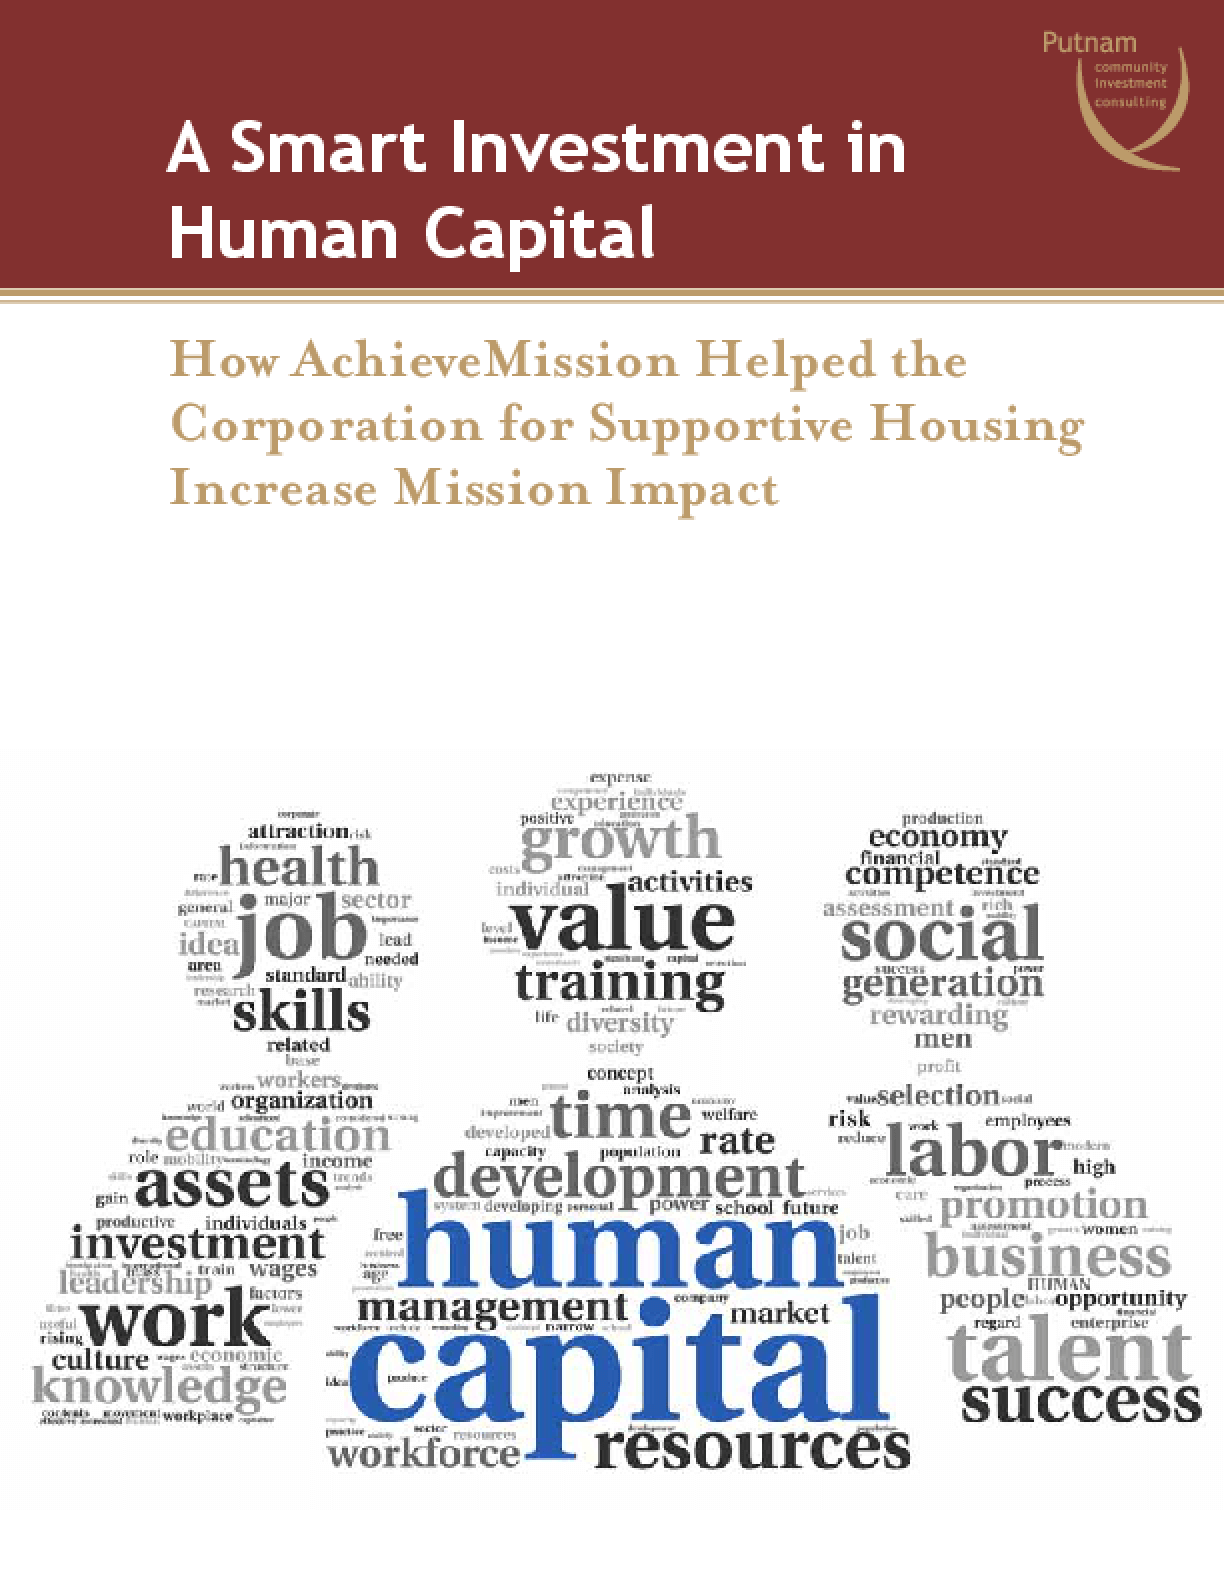 A Smart Investment in Human Capital: How AchieveMission Helped the Corporation for Supportive Housing Increase Mission Impact